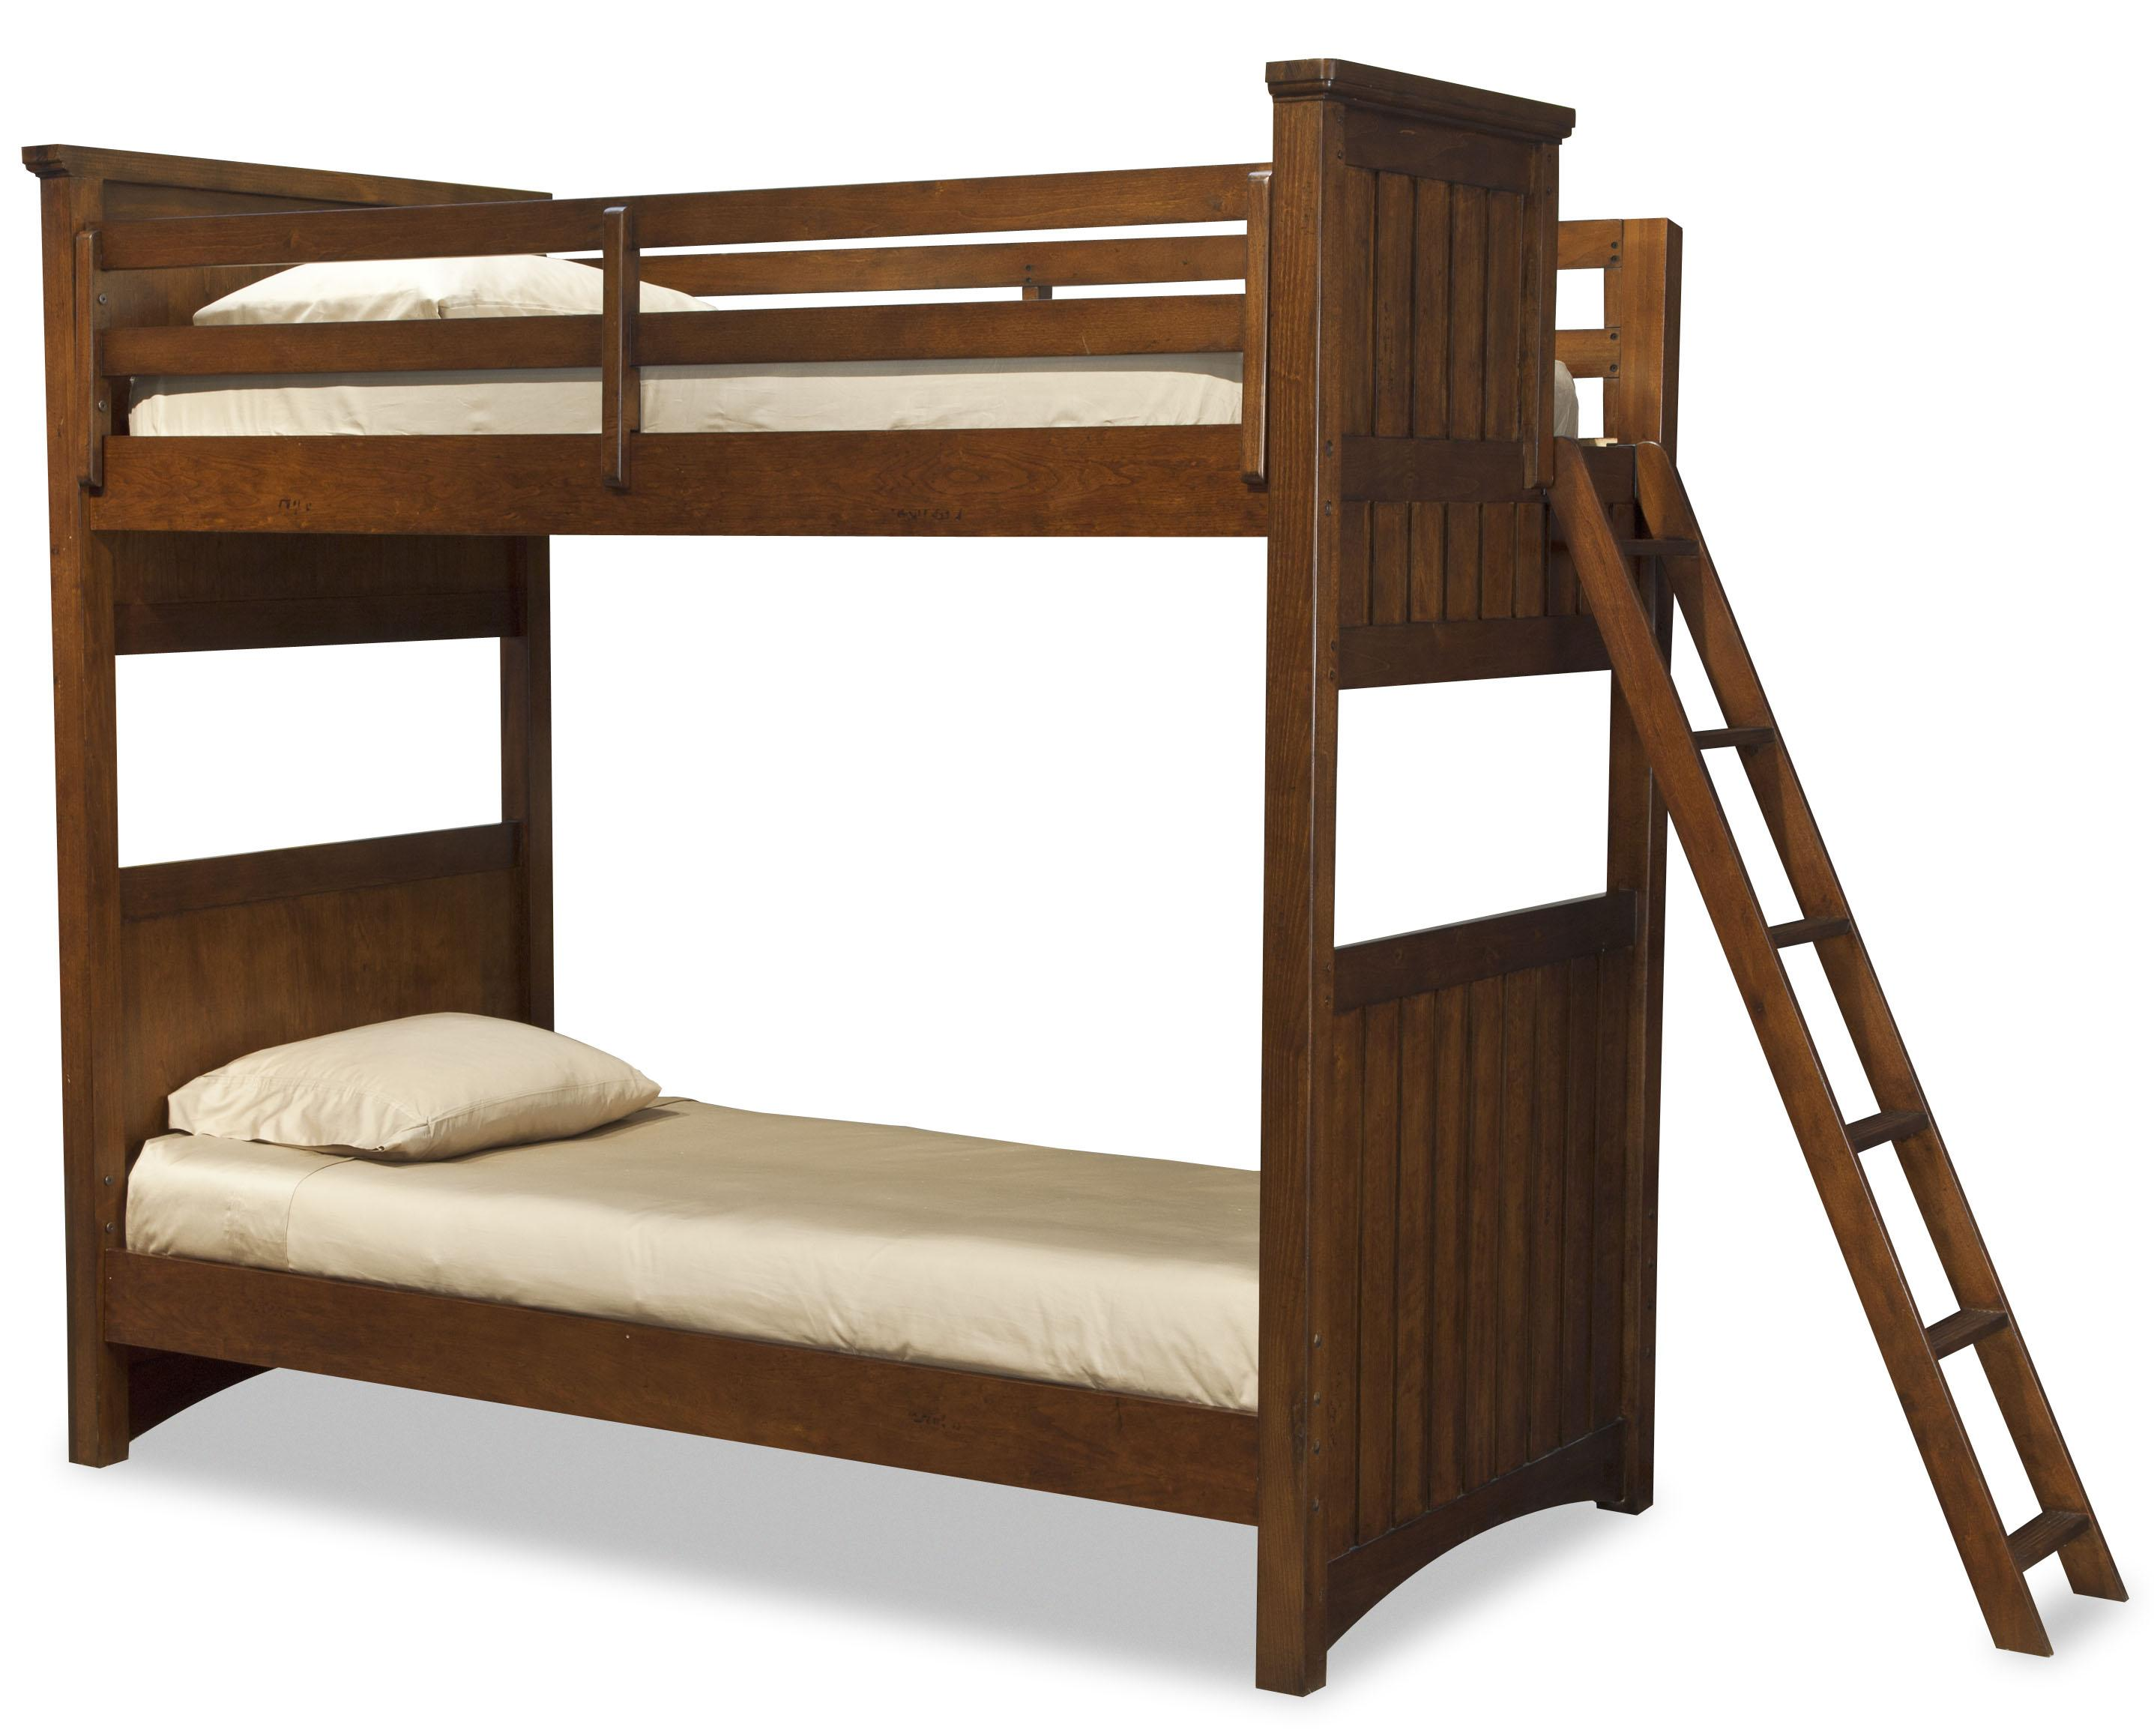 Legacy Classic Kids Dawsons Ridge Full-over-Full Bunk w/ Ladder - Item Number: 2960-8520+8320+8310+2x888-4924C